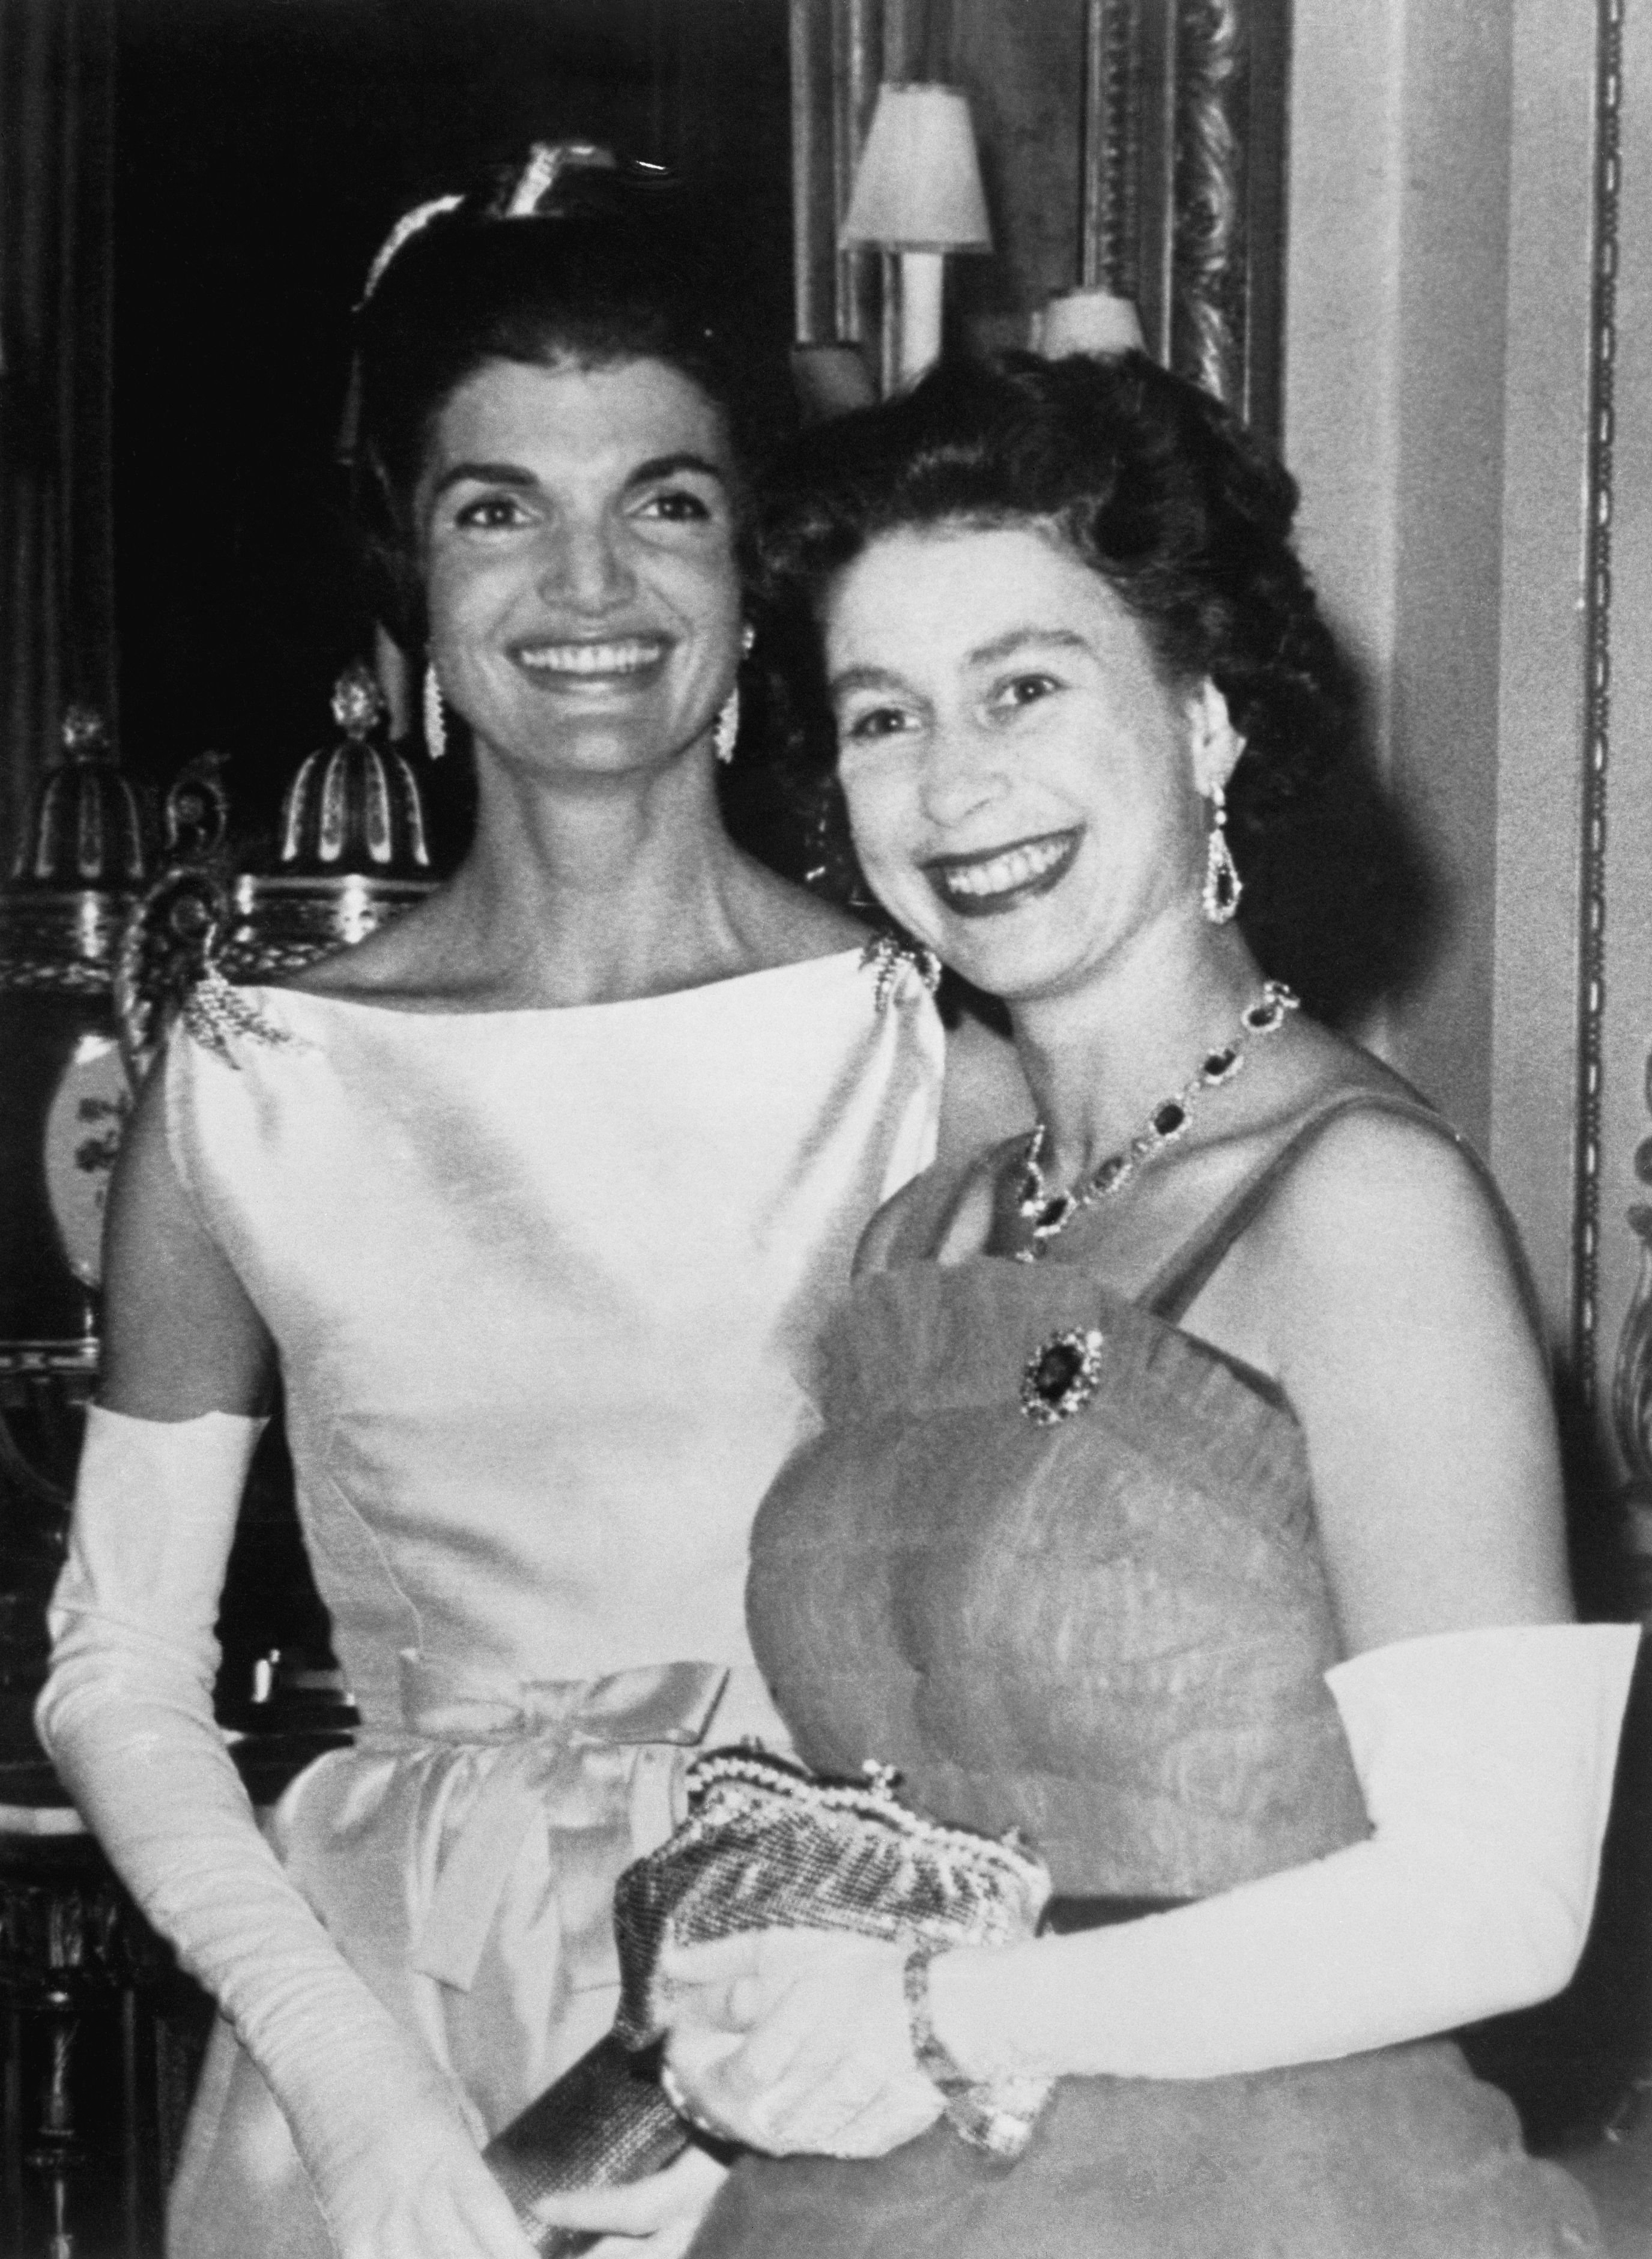 Queen Elizabeth and Jacqueline Kennedy after dinner at Buckingham Palace here June 5, 1918. | Source: Getty Images